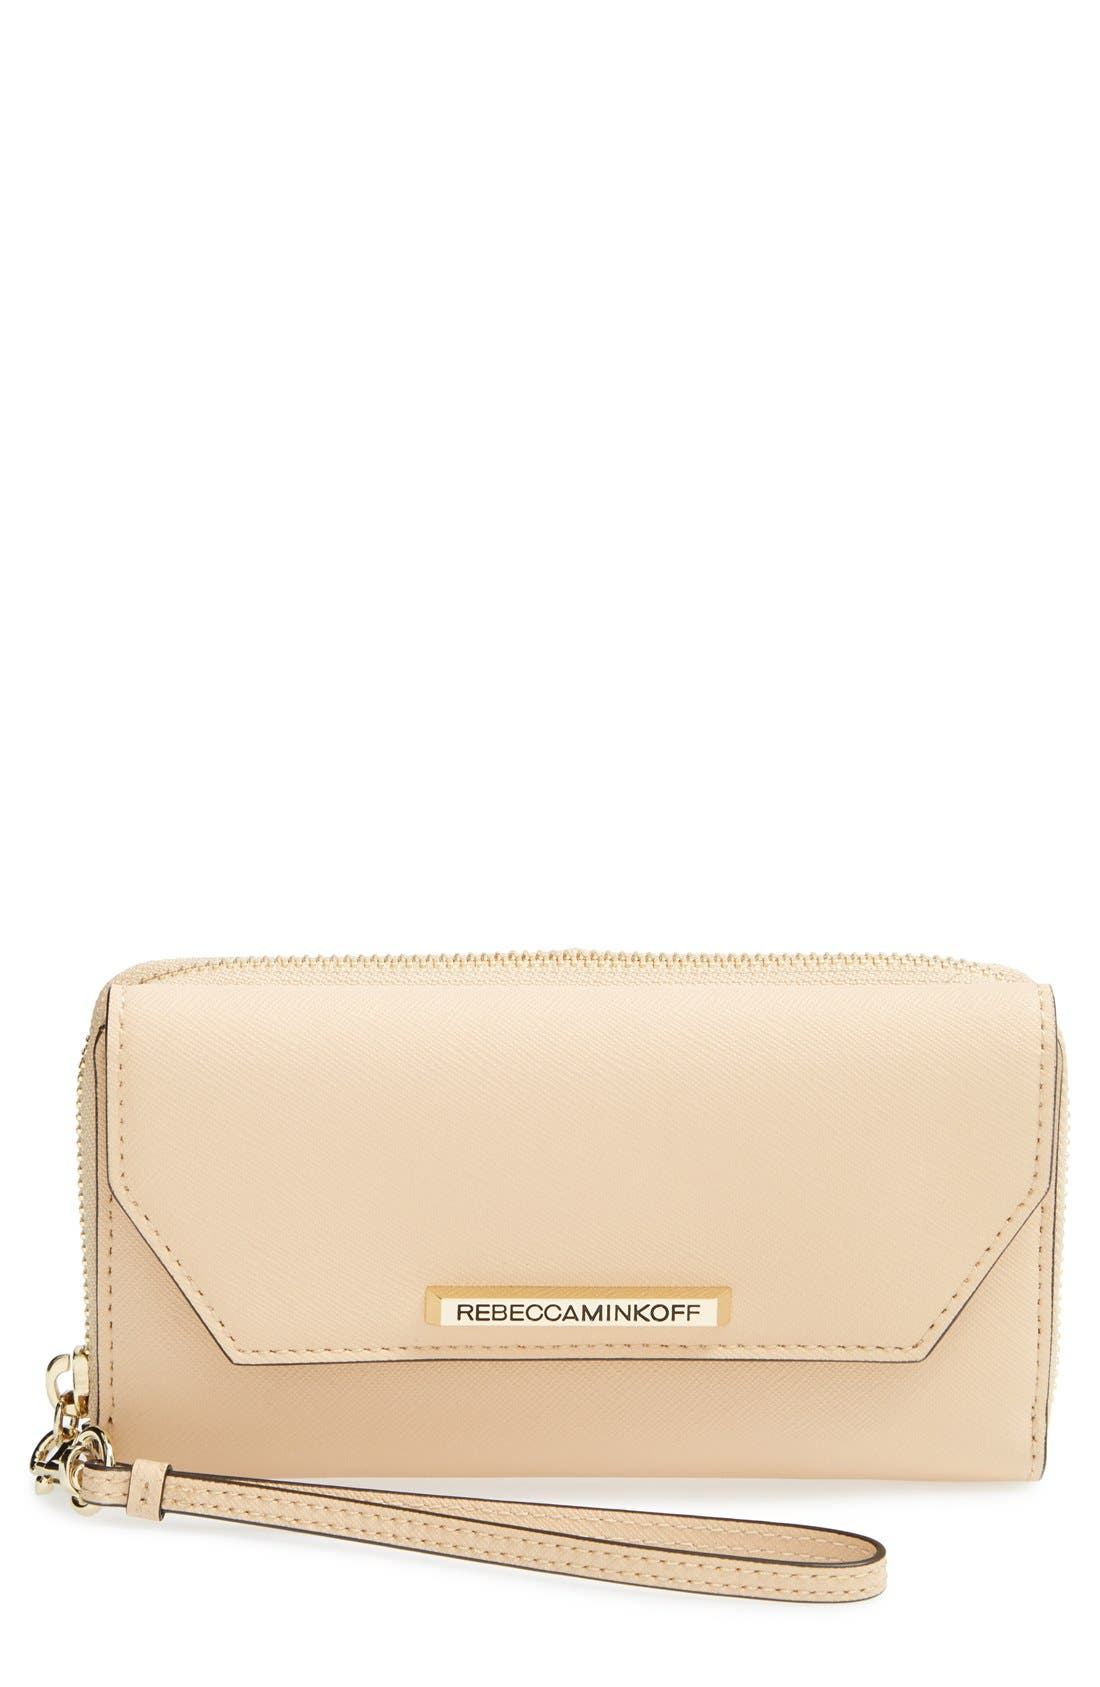 Alternate Image 1 Selected - Rebecca Minkoff 'Monroe' Tech Wristlet